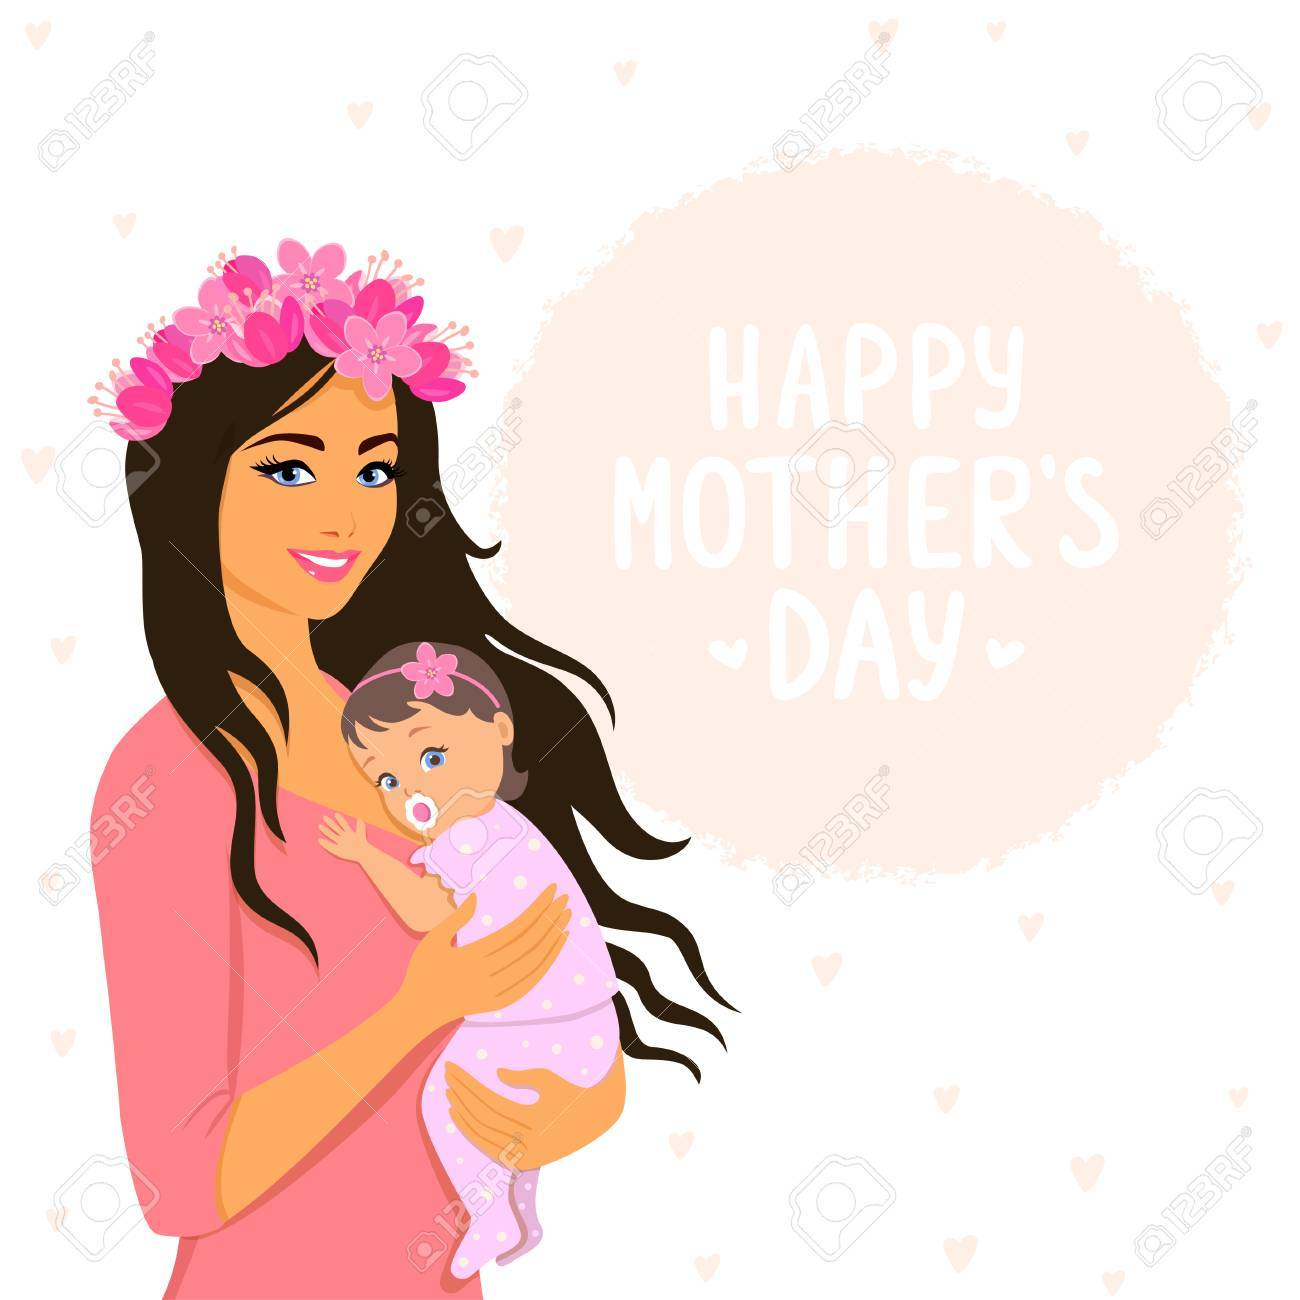 Beautiful And Cute Cartoon Mother With Baby Happy Motherhood Royalty Free Cliparts Vectors And Stock Illustration Image 80199860